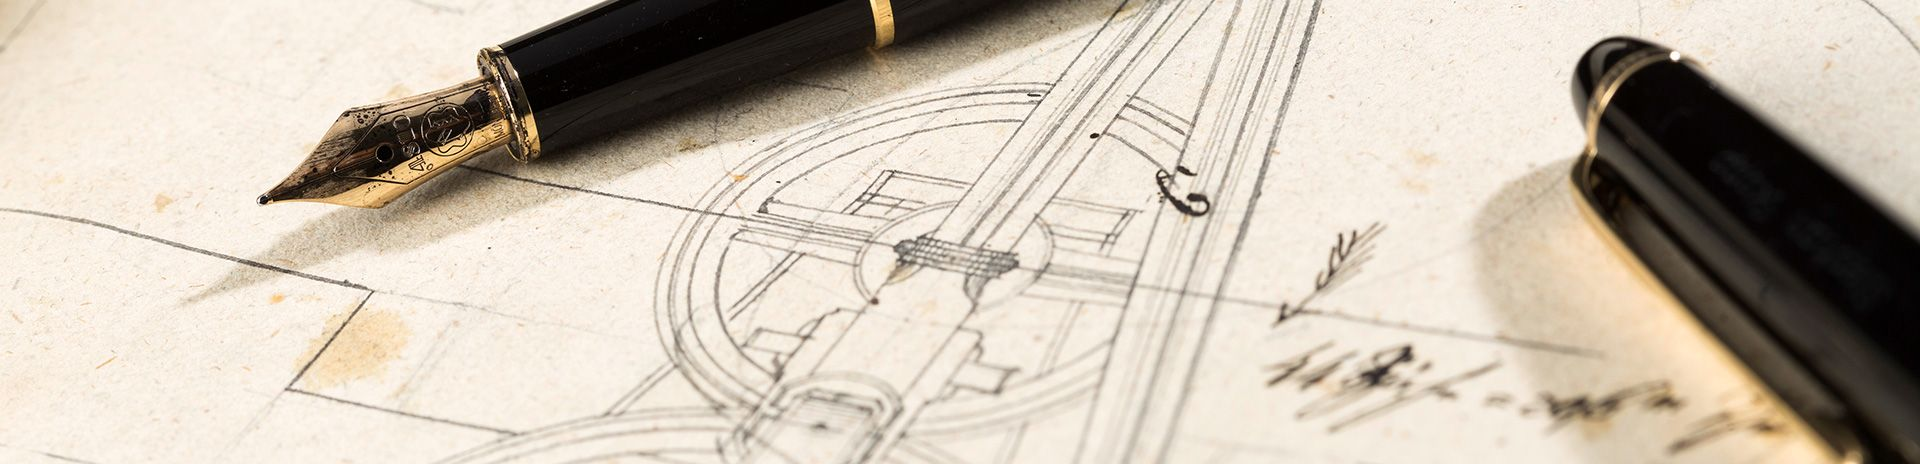 Pens laying on a technical drawing